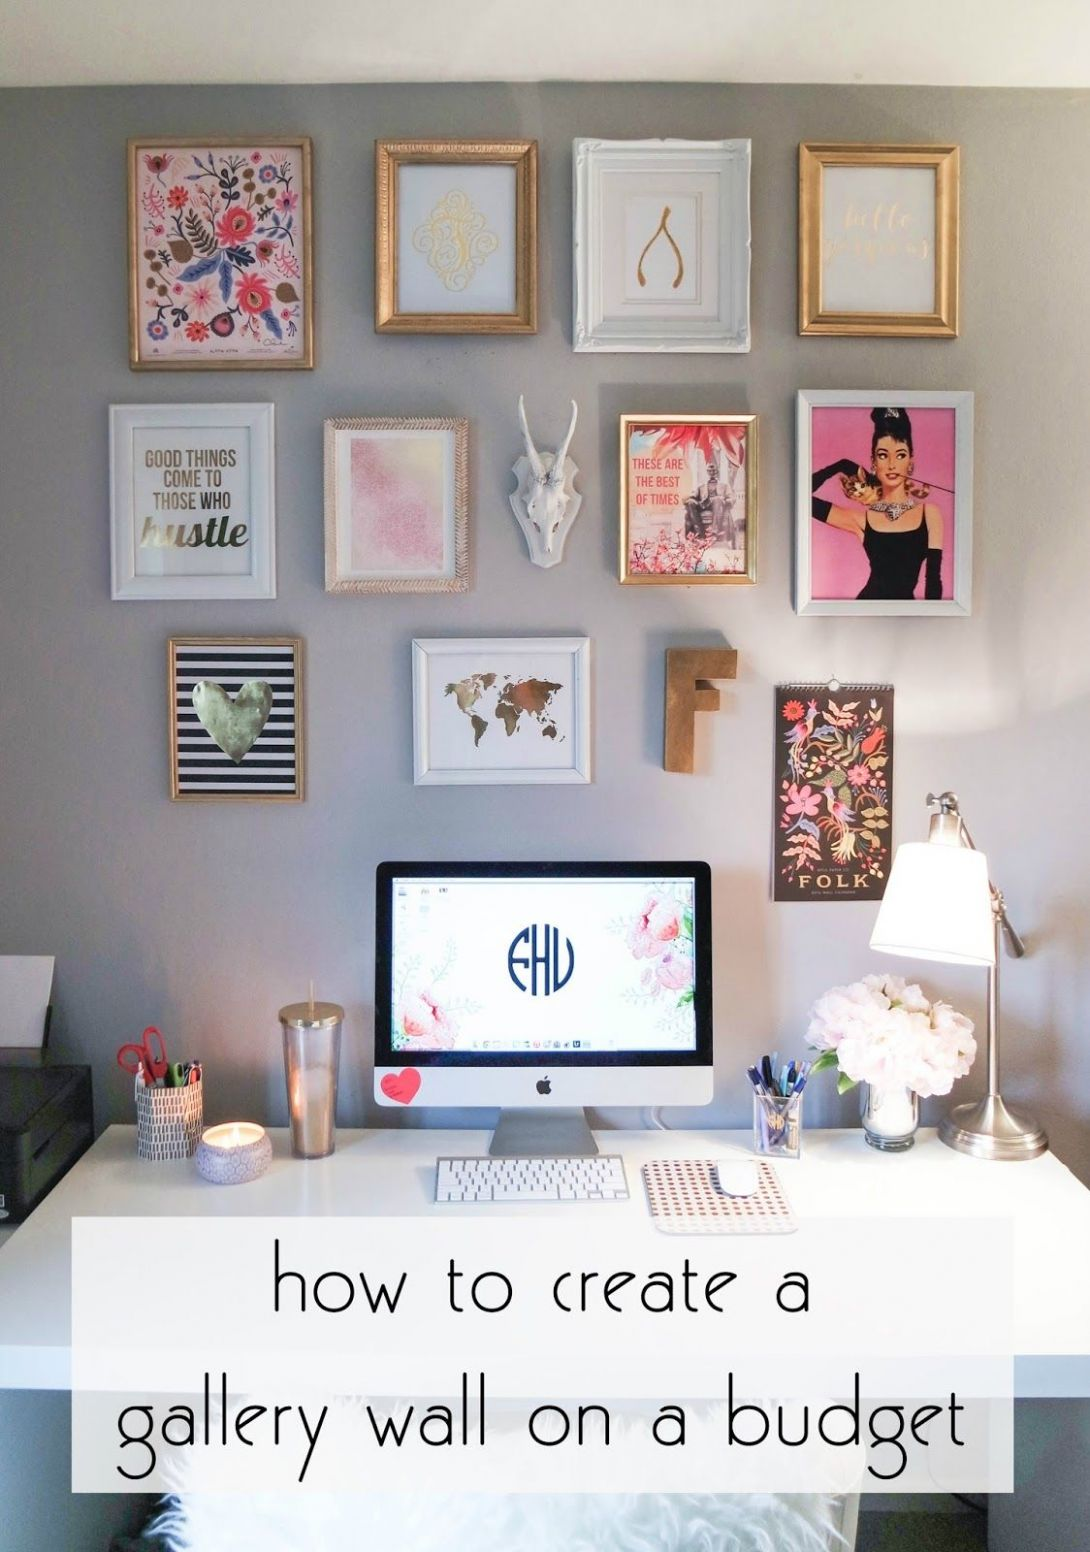 creating a gallery wall on a budget | Dorm room diy, Apartment ...